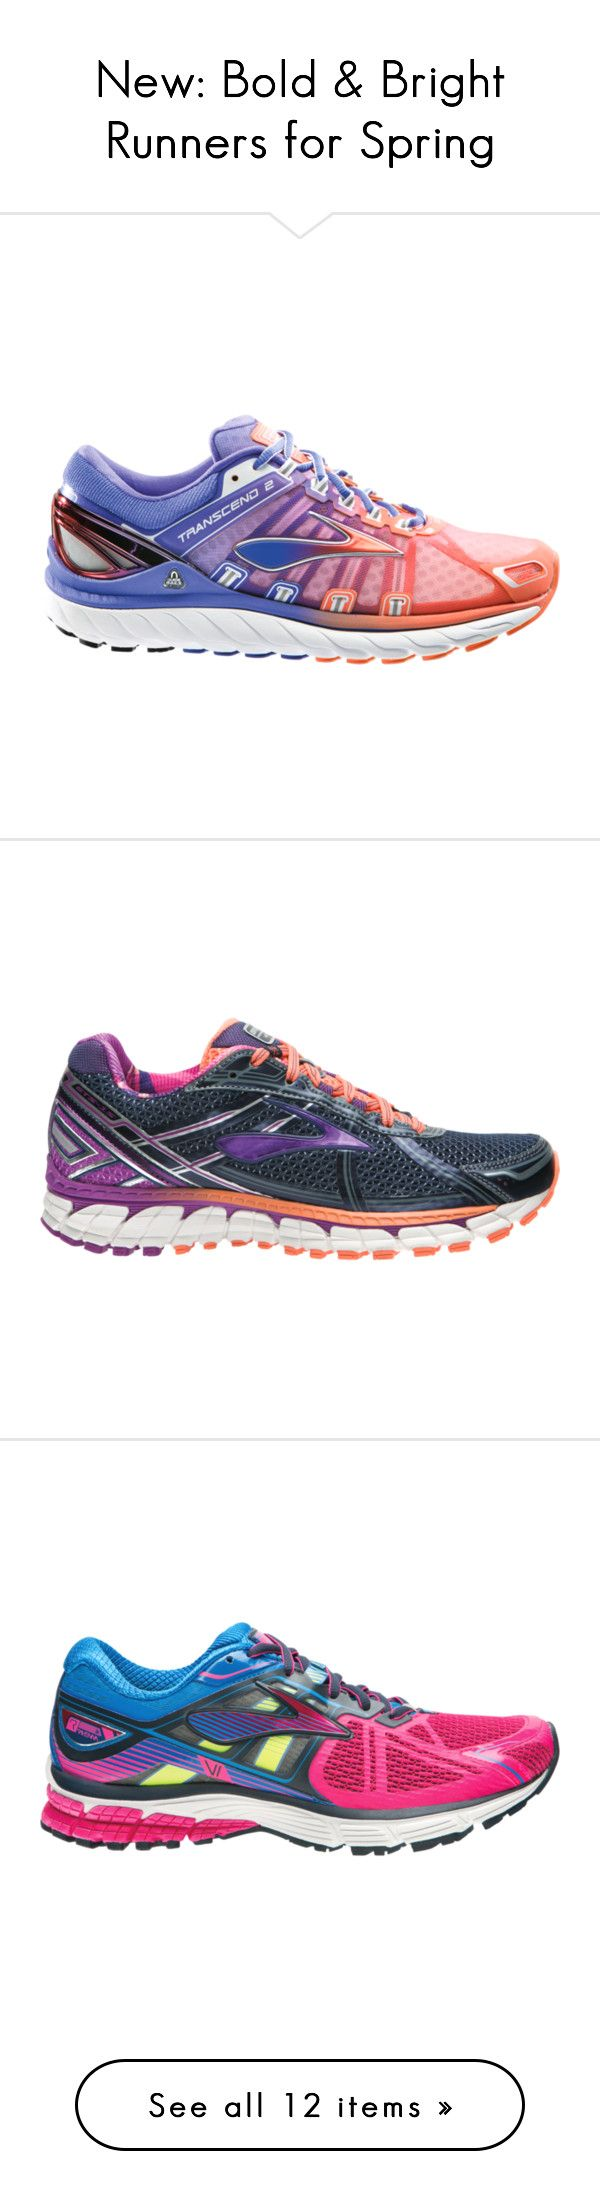 """""""New: Bold & Bright Runners for Spring"""" by shoeme ❤ liked on Polyvore featuring shoes, athletic shoes, athletic footwear, mesh running shoes, brooks athletic shoes, athletic running shoes, brooks footwear, cushioned running shoes, brooks shoes and light weight running shoes"""